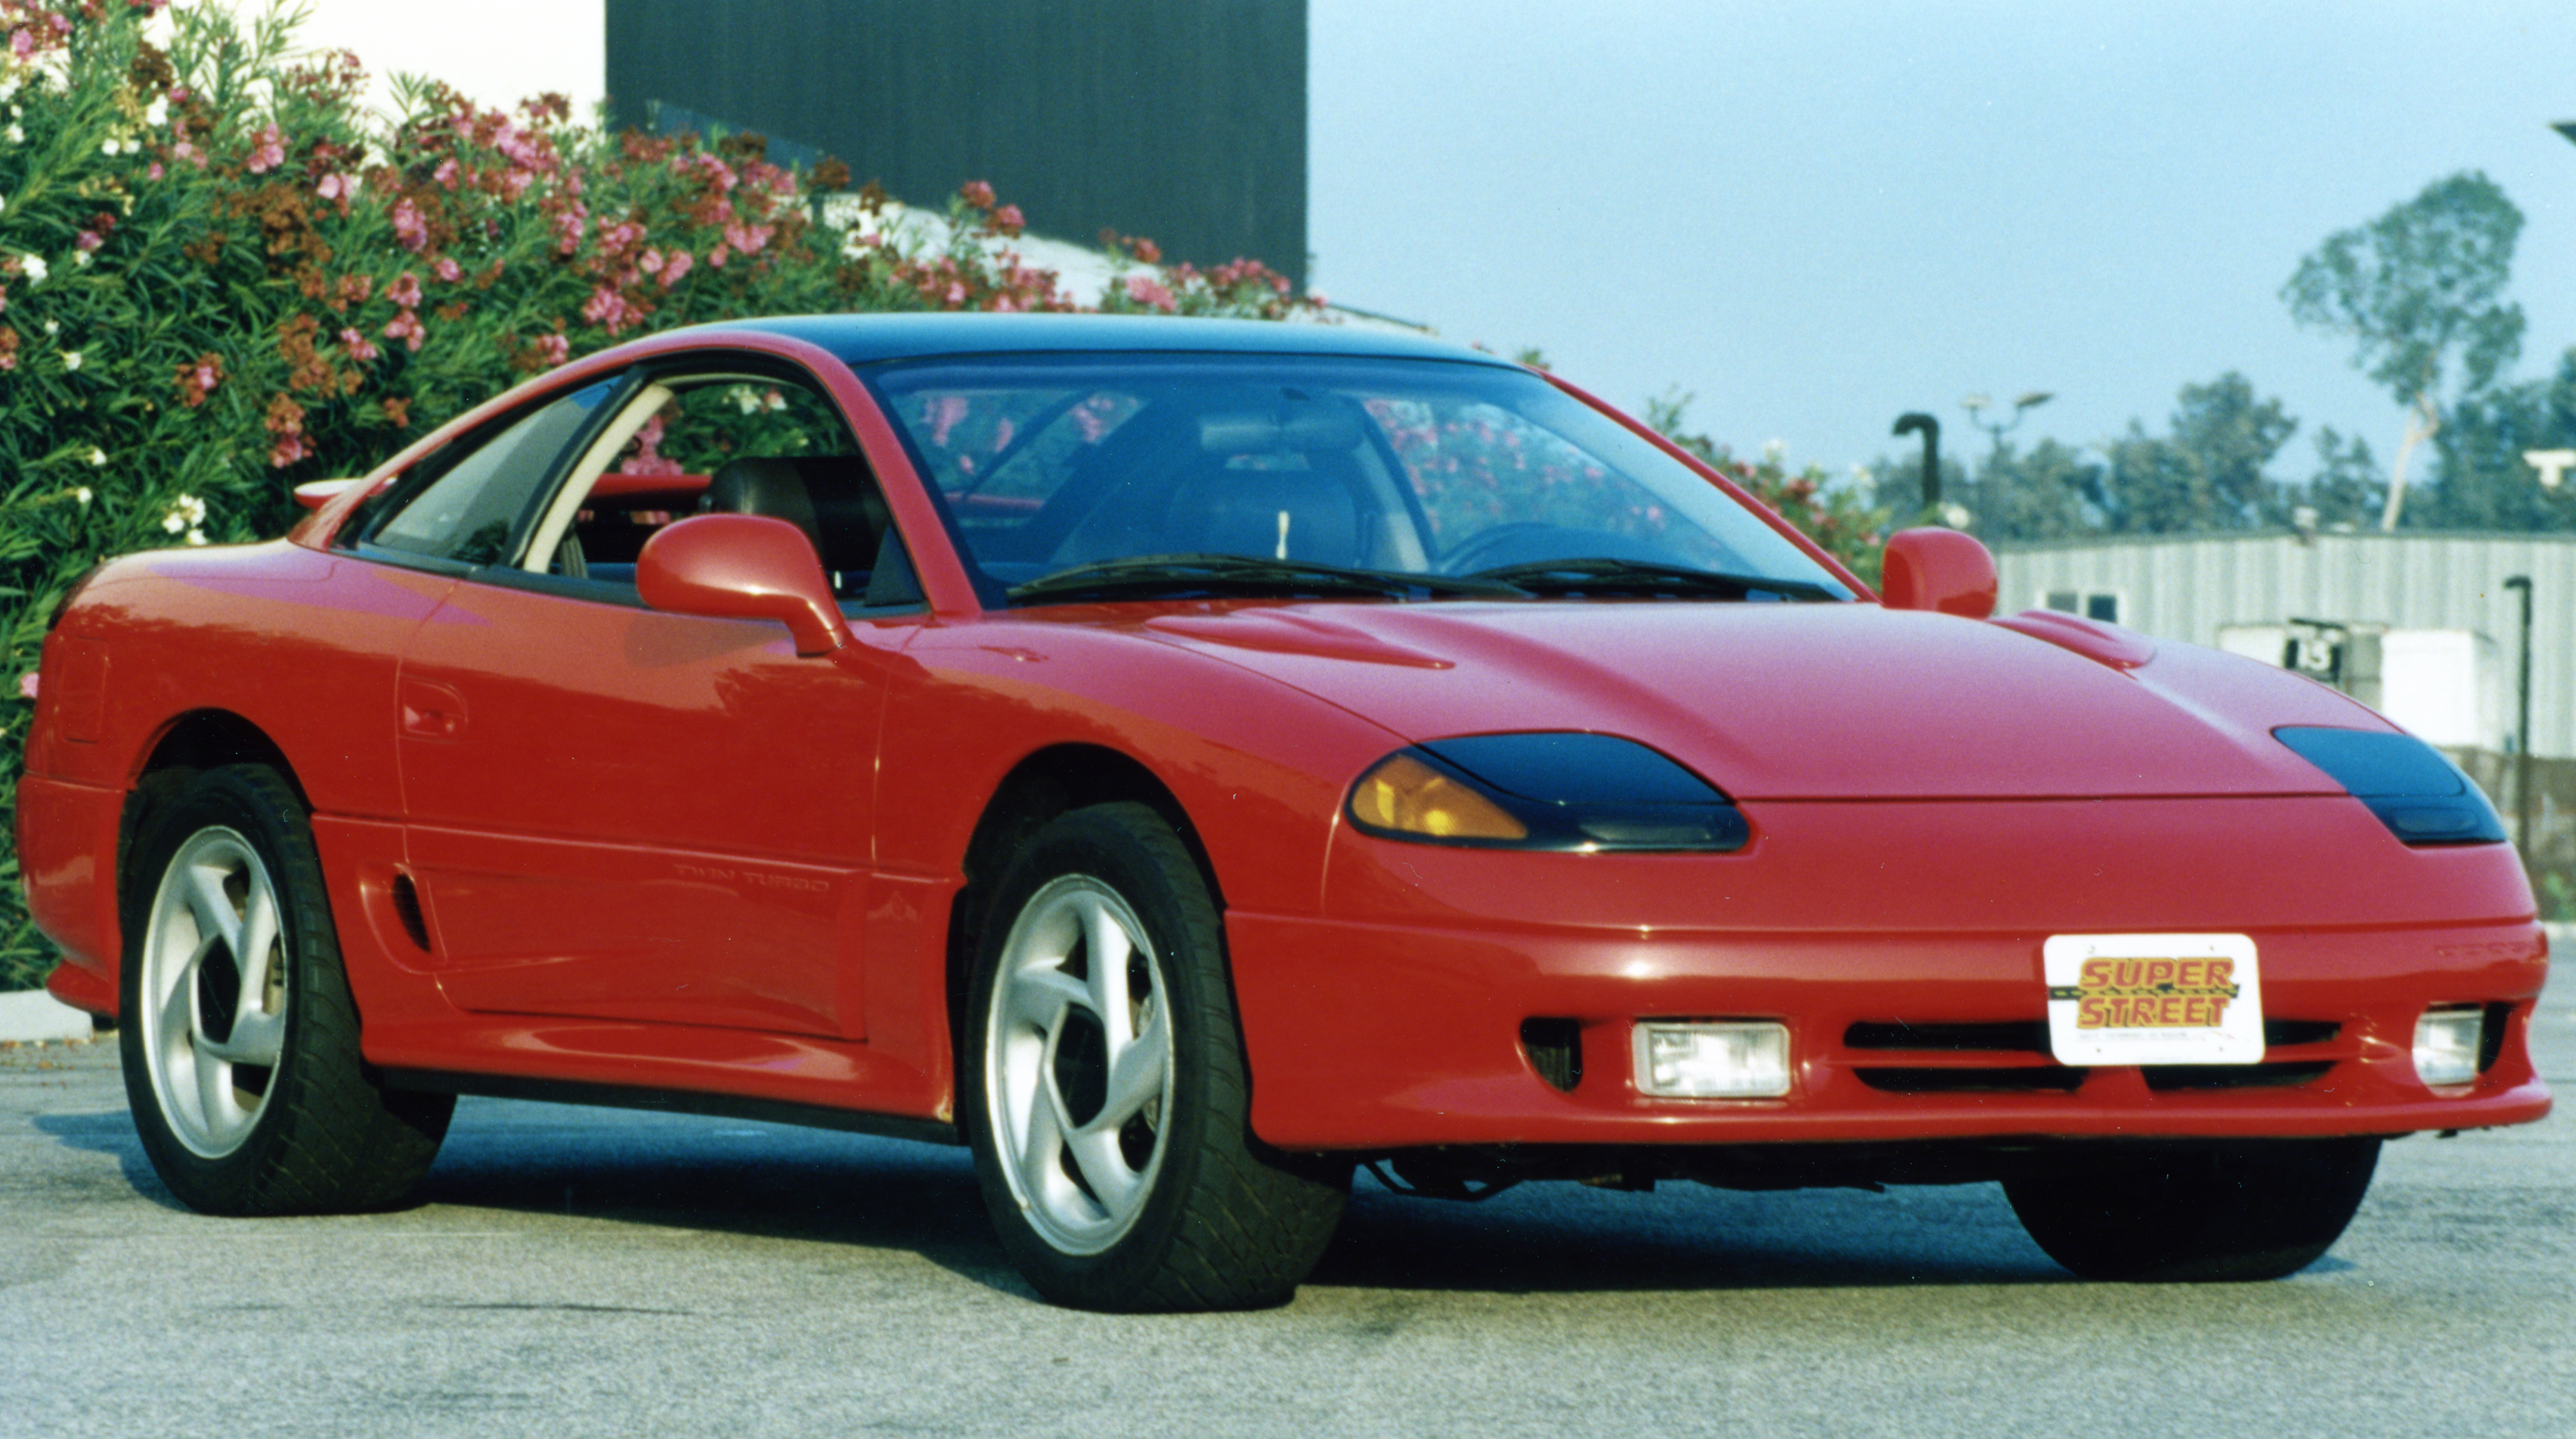 Karl On Cars Page 2 Lets Talk Motorcycles And Other Life 3000gt Fuel Filter 1991 Dodge Stealth Rt Twin Turbo